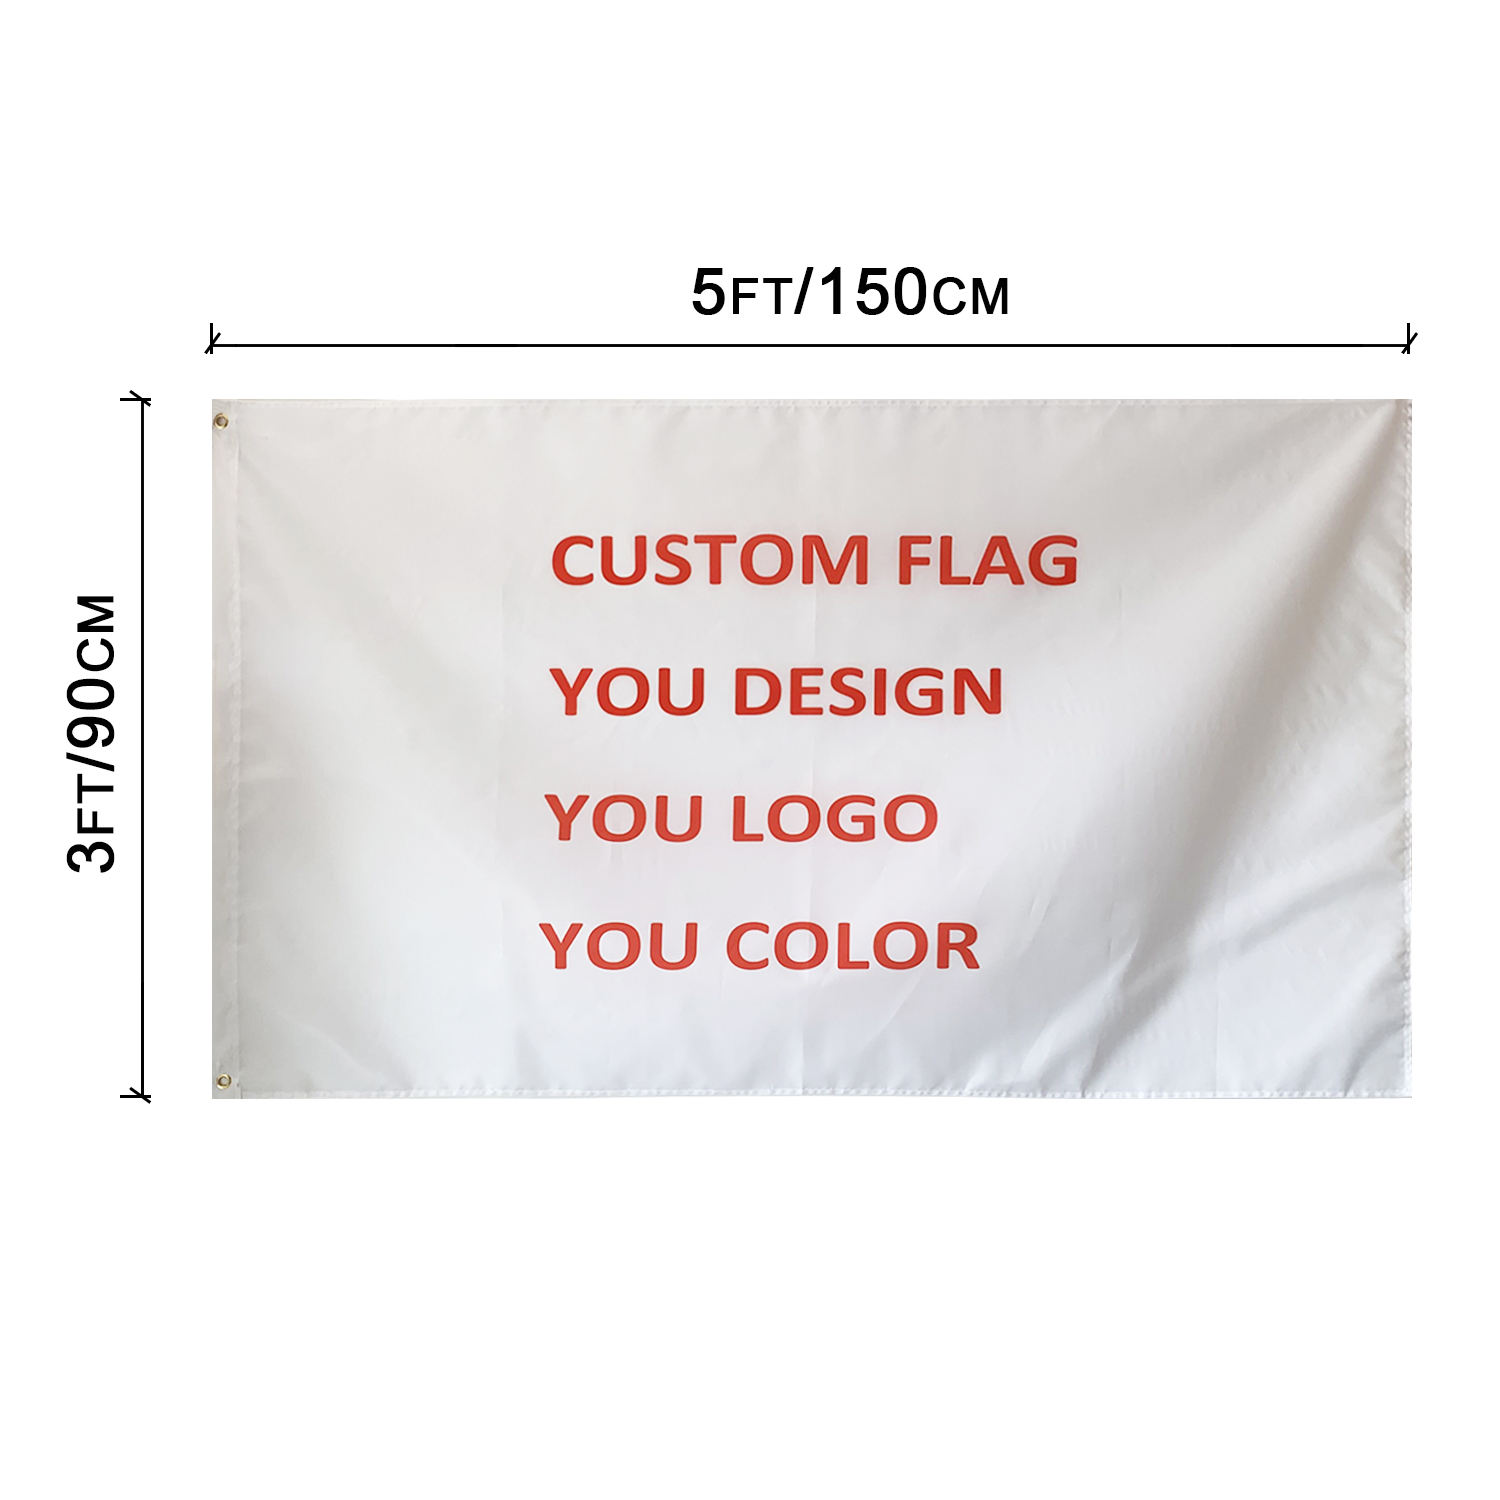 China factories wholesale 3x5ft large national flag outdoor all country custom design cheap price flags